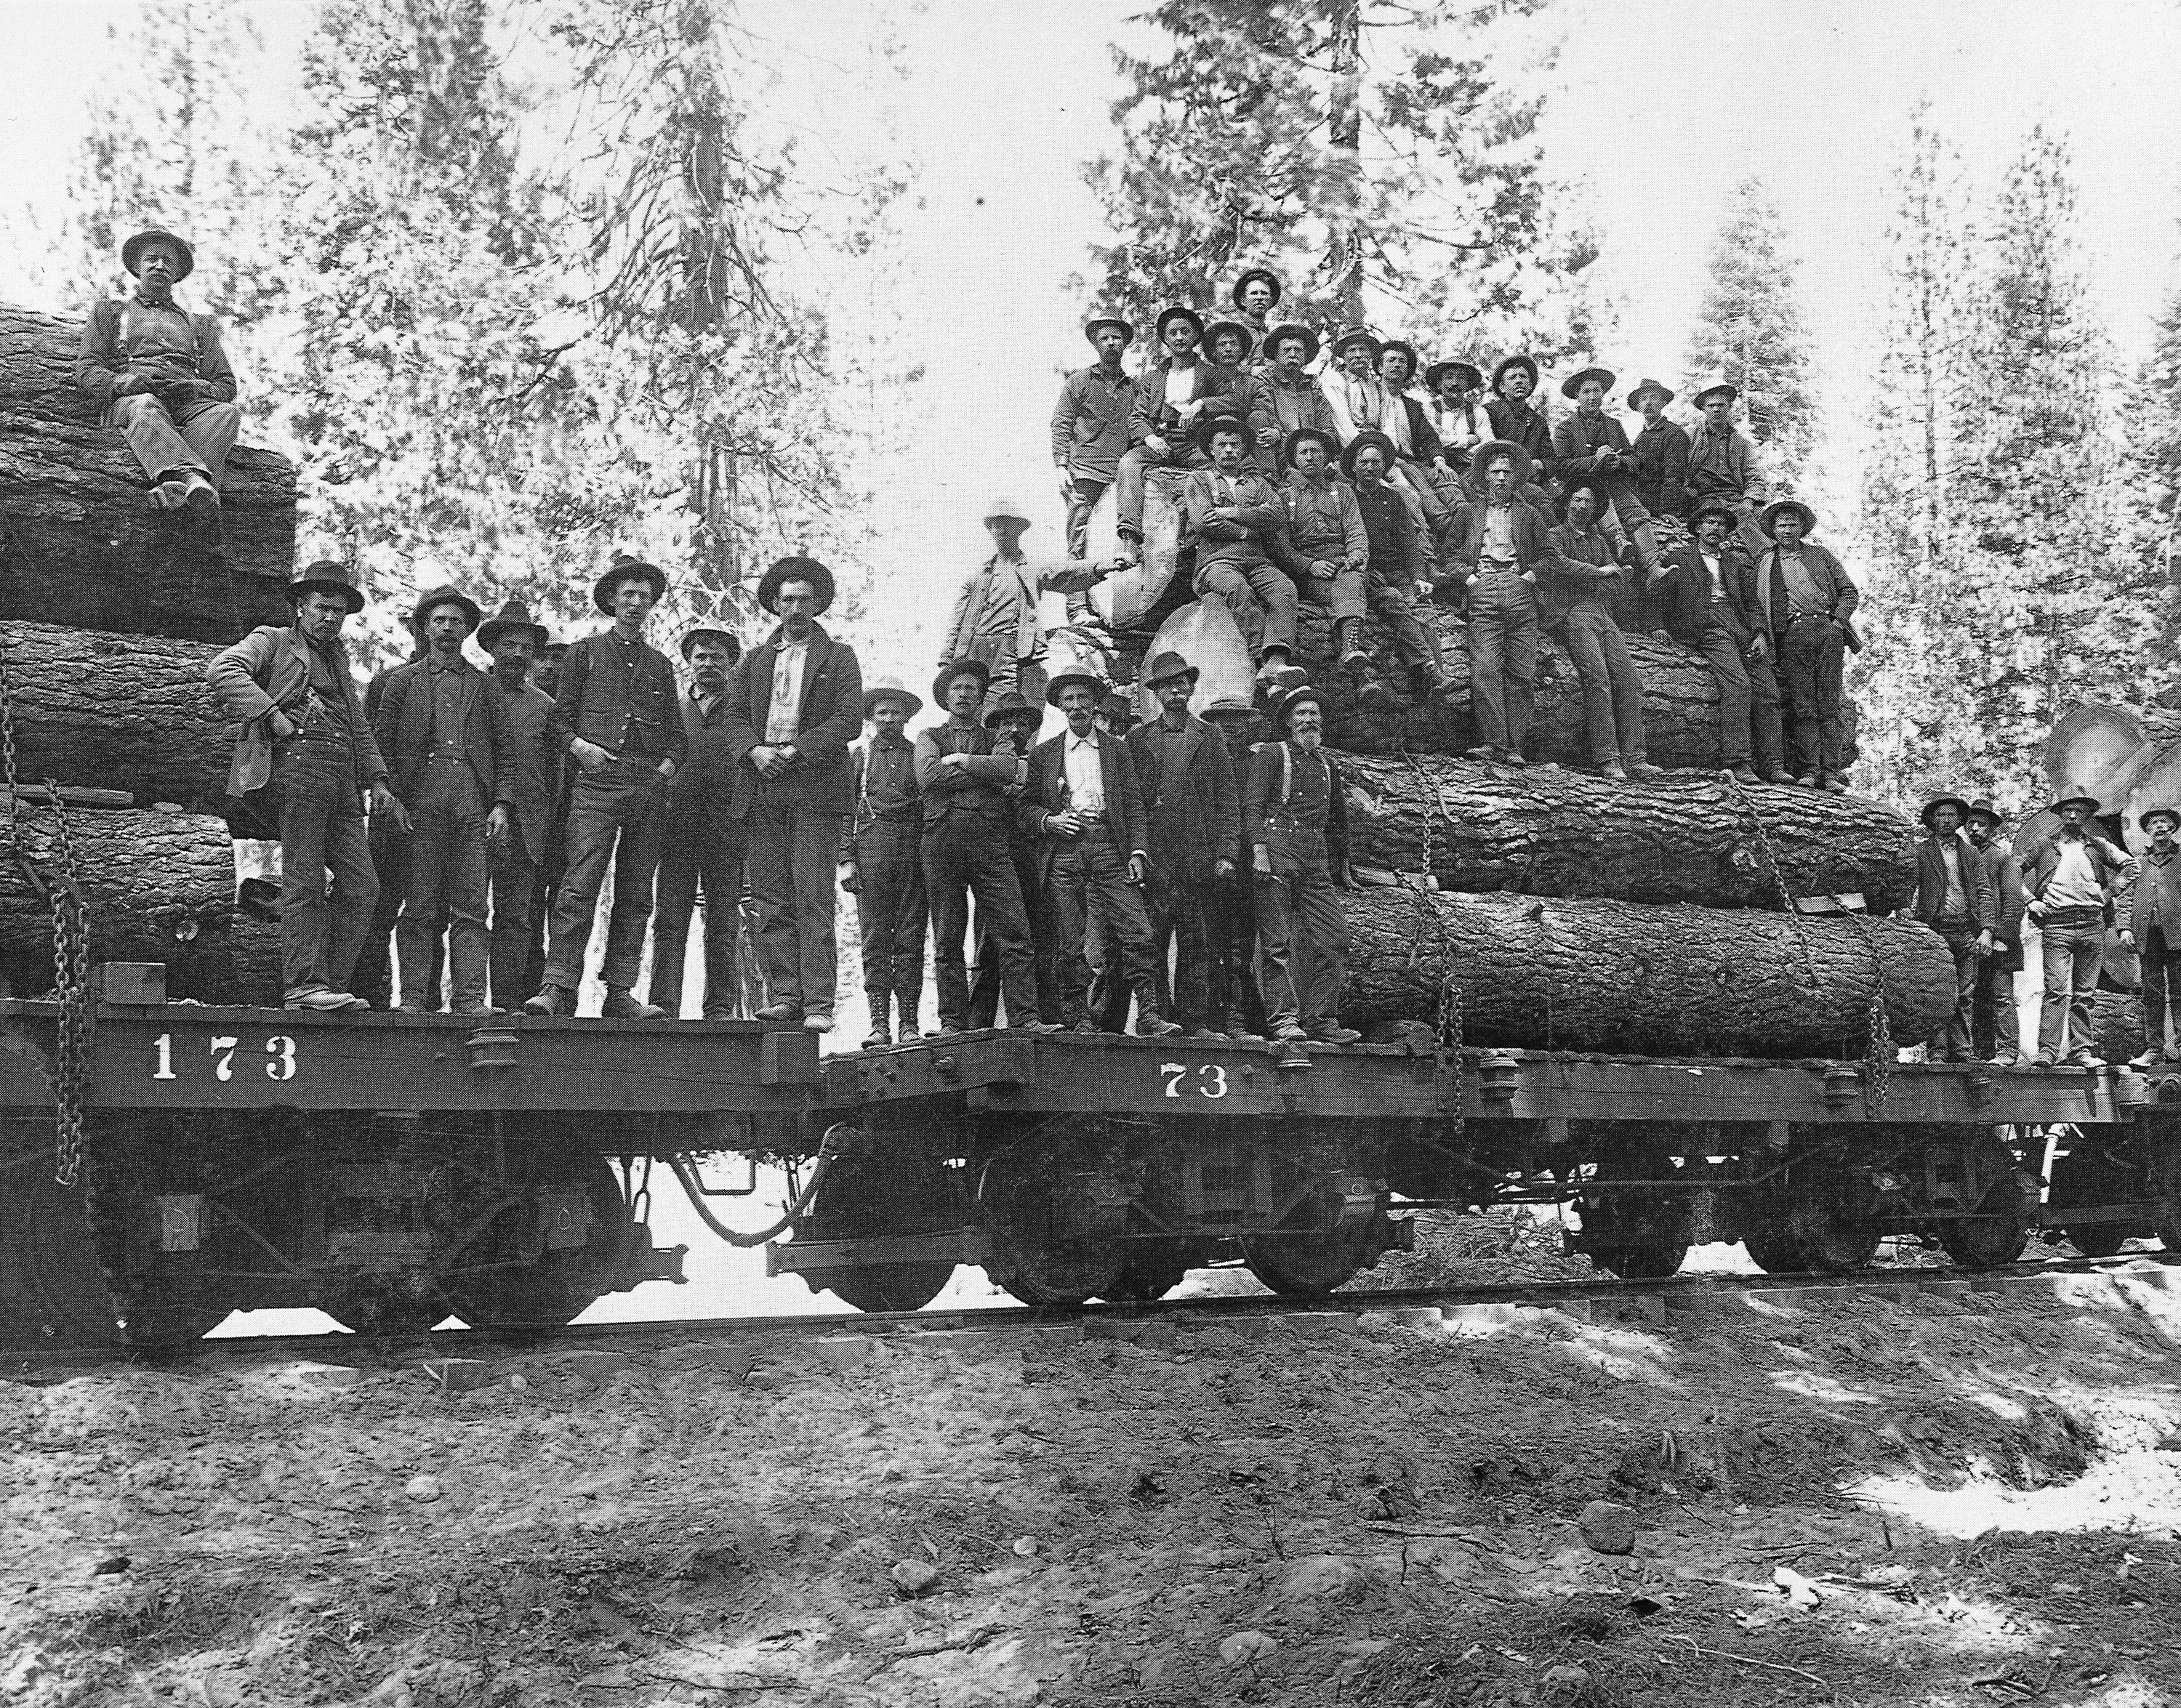 Workers pose in 1910 with first trainload of logs shipped on the PR&N line. Six years later, timber baron Coleman Wheeler was shipping as many as 14 carloads of logs a day out of the Coast Range. (Washington Country Historical Society)